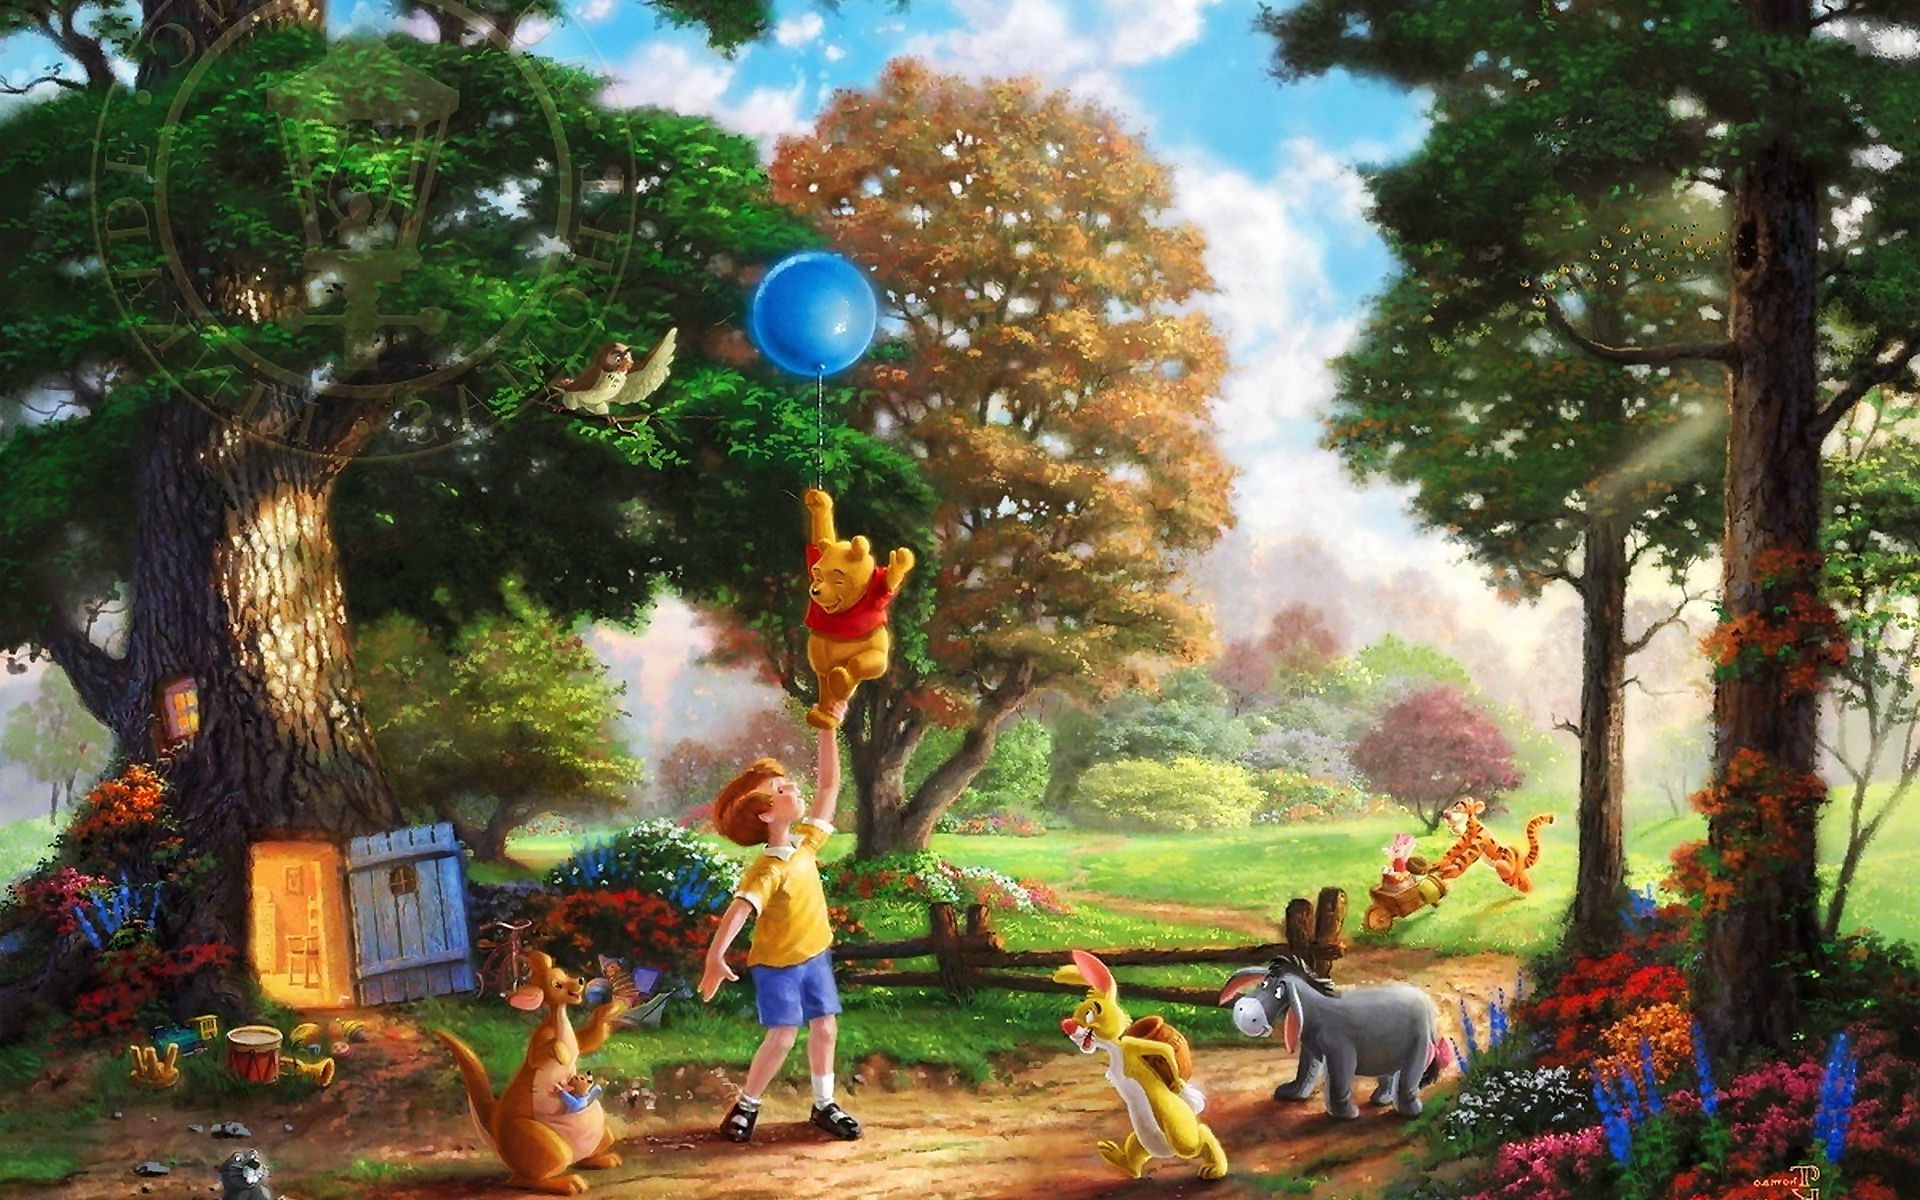 1920x1200 Winnie The Pooh Thomas Kinkade Wallpaper,Images,Pictures,Photos,HD  Wallpapers